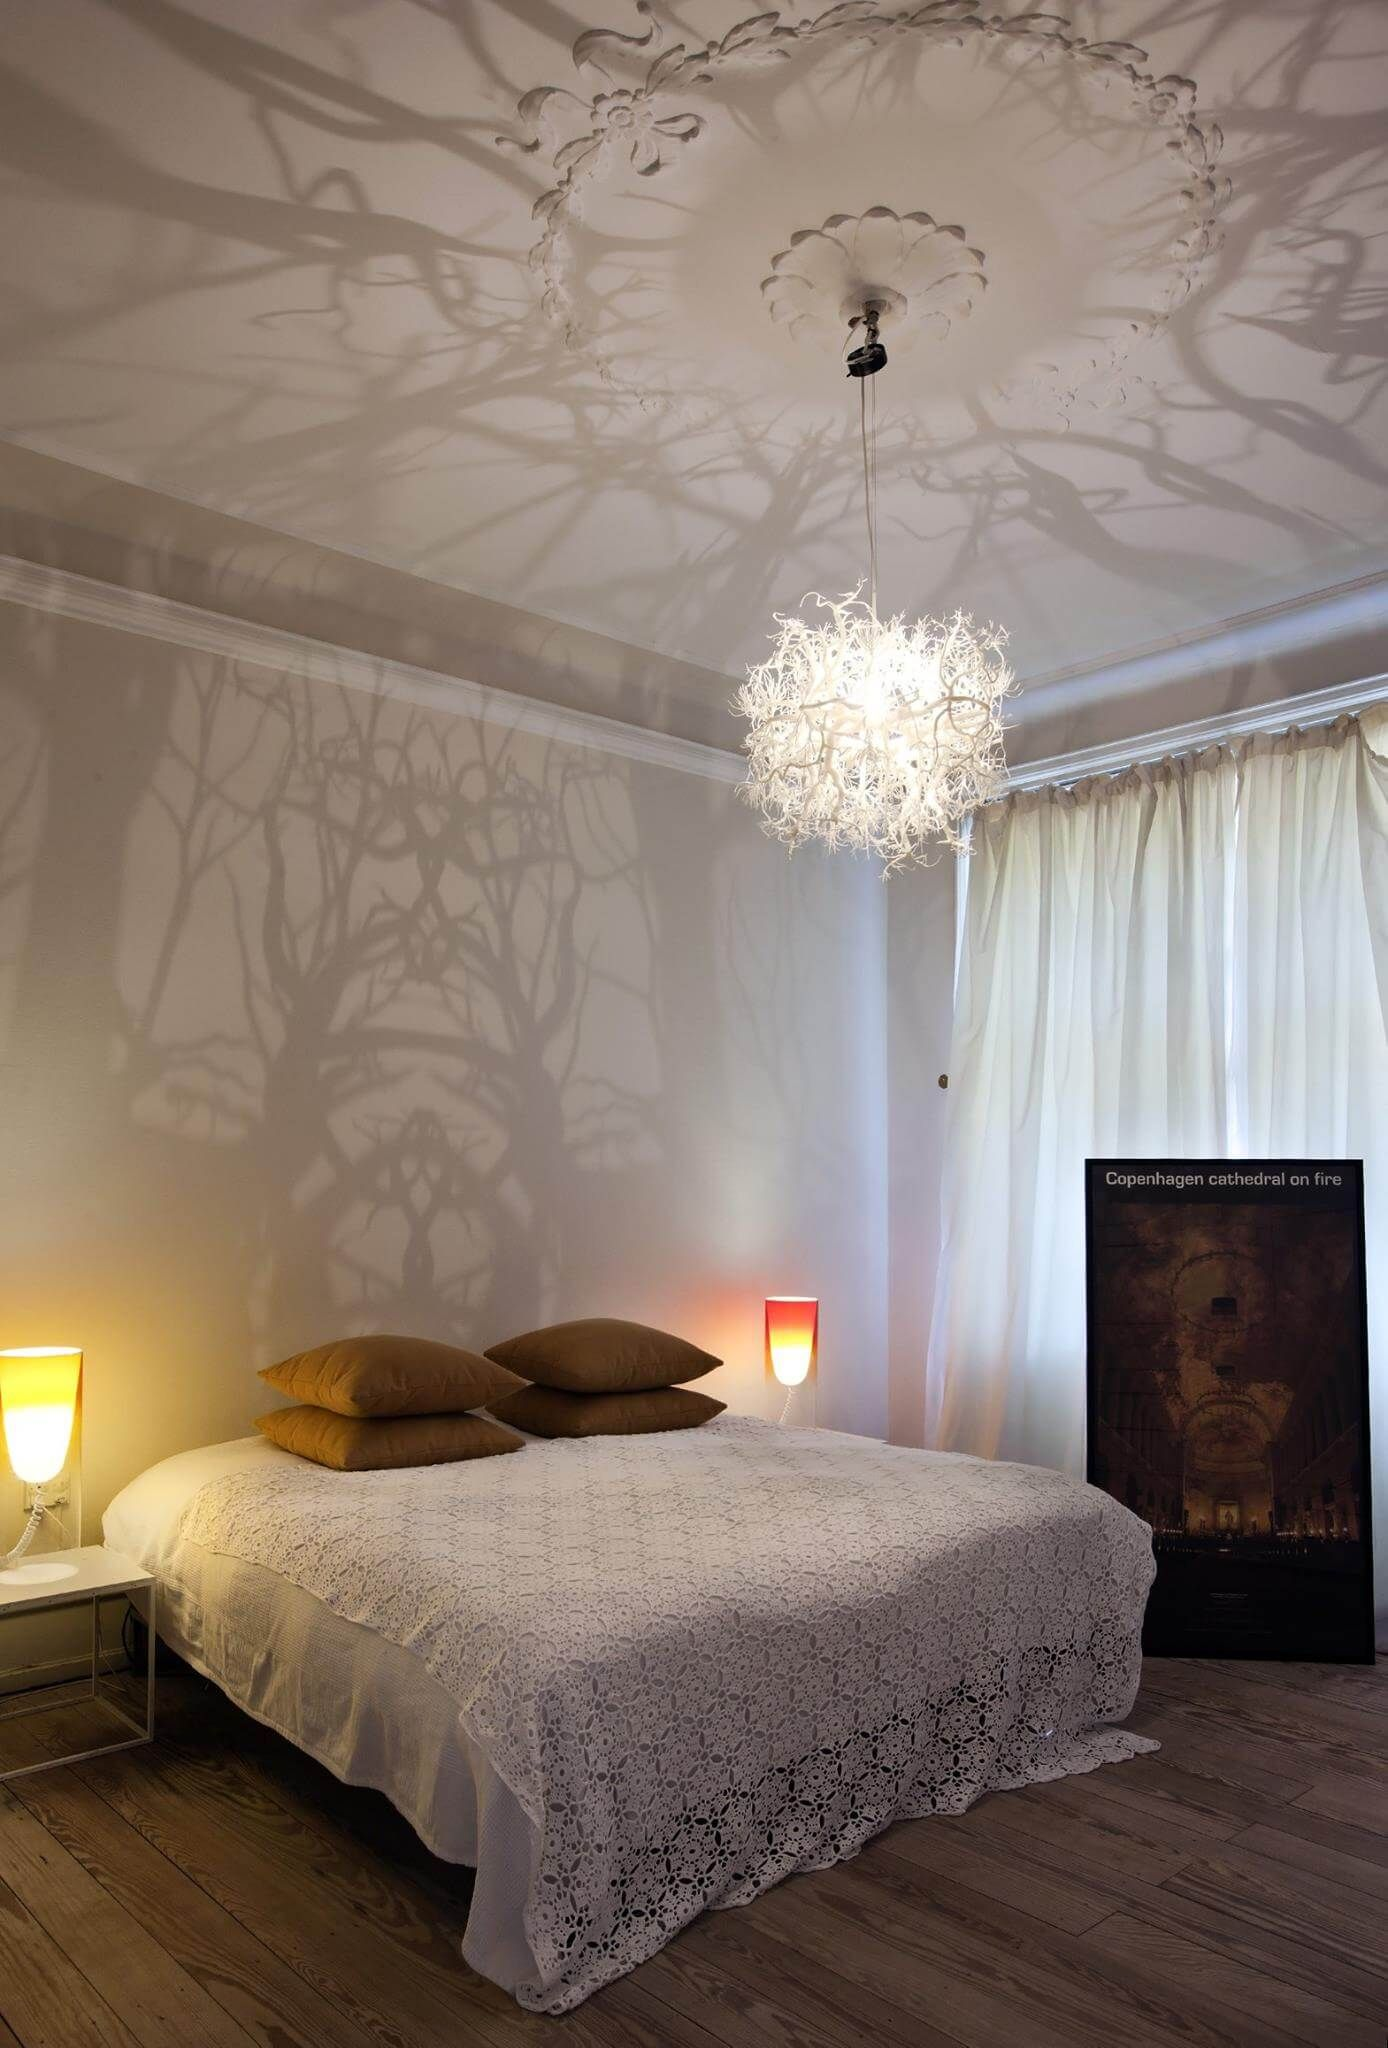 Intricate Chandelier Casts Mysterious Forest Scene on Walls - http ...